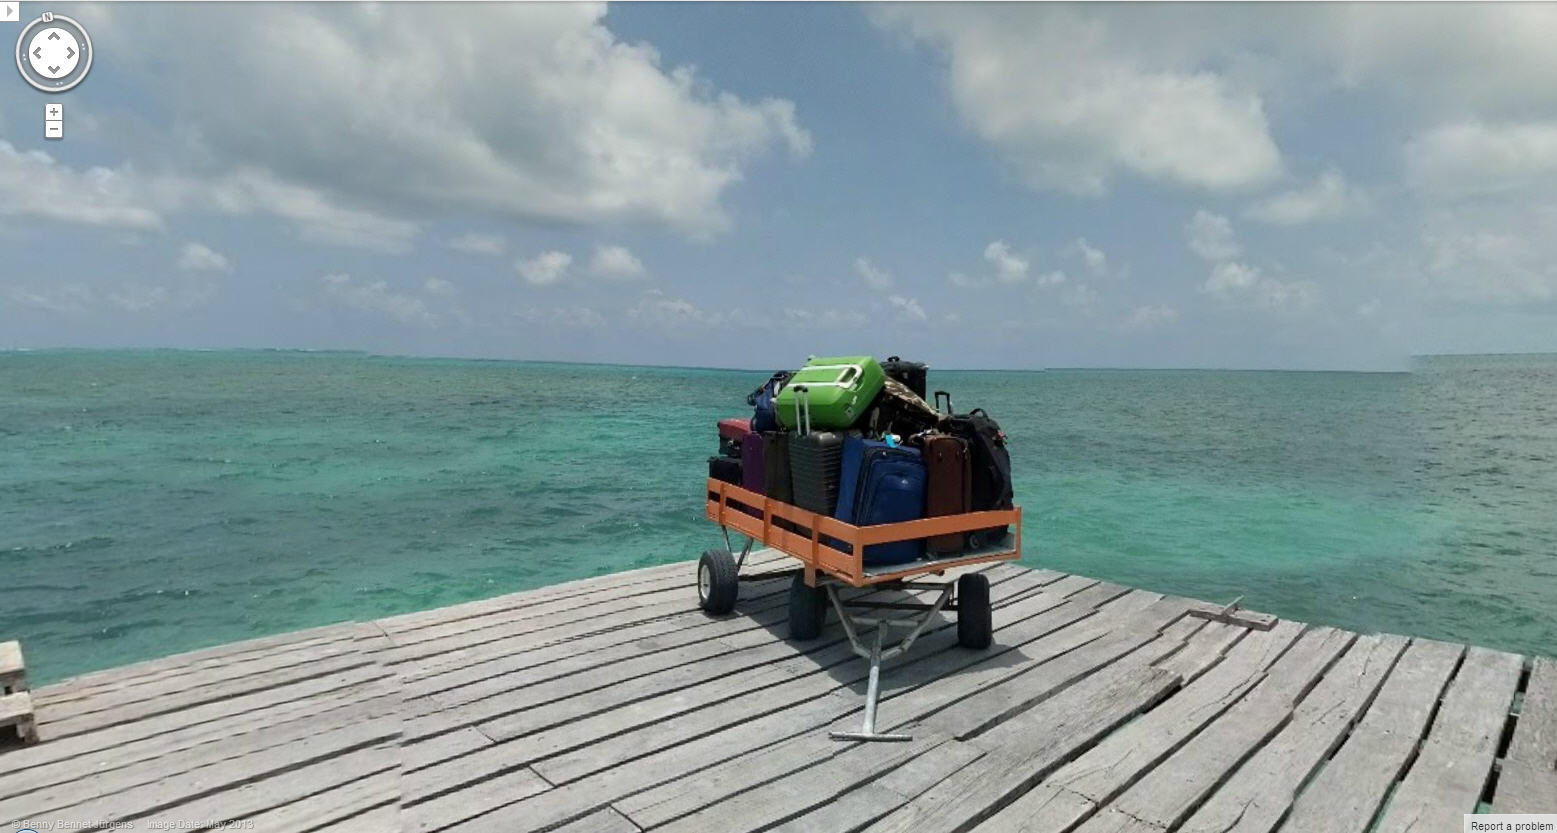 Luggage Left on the Dock